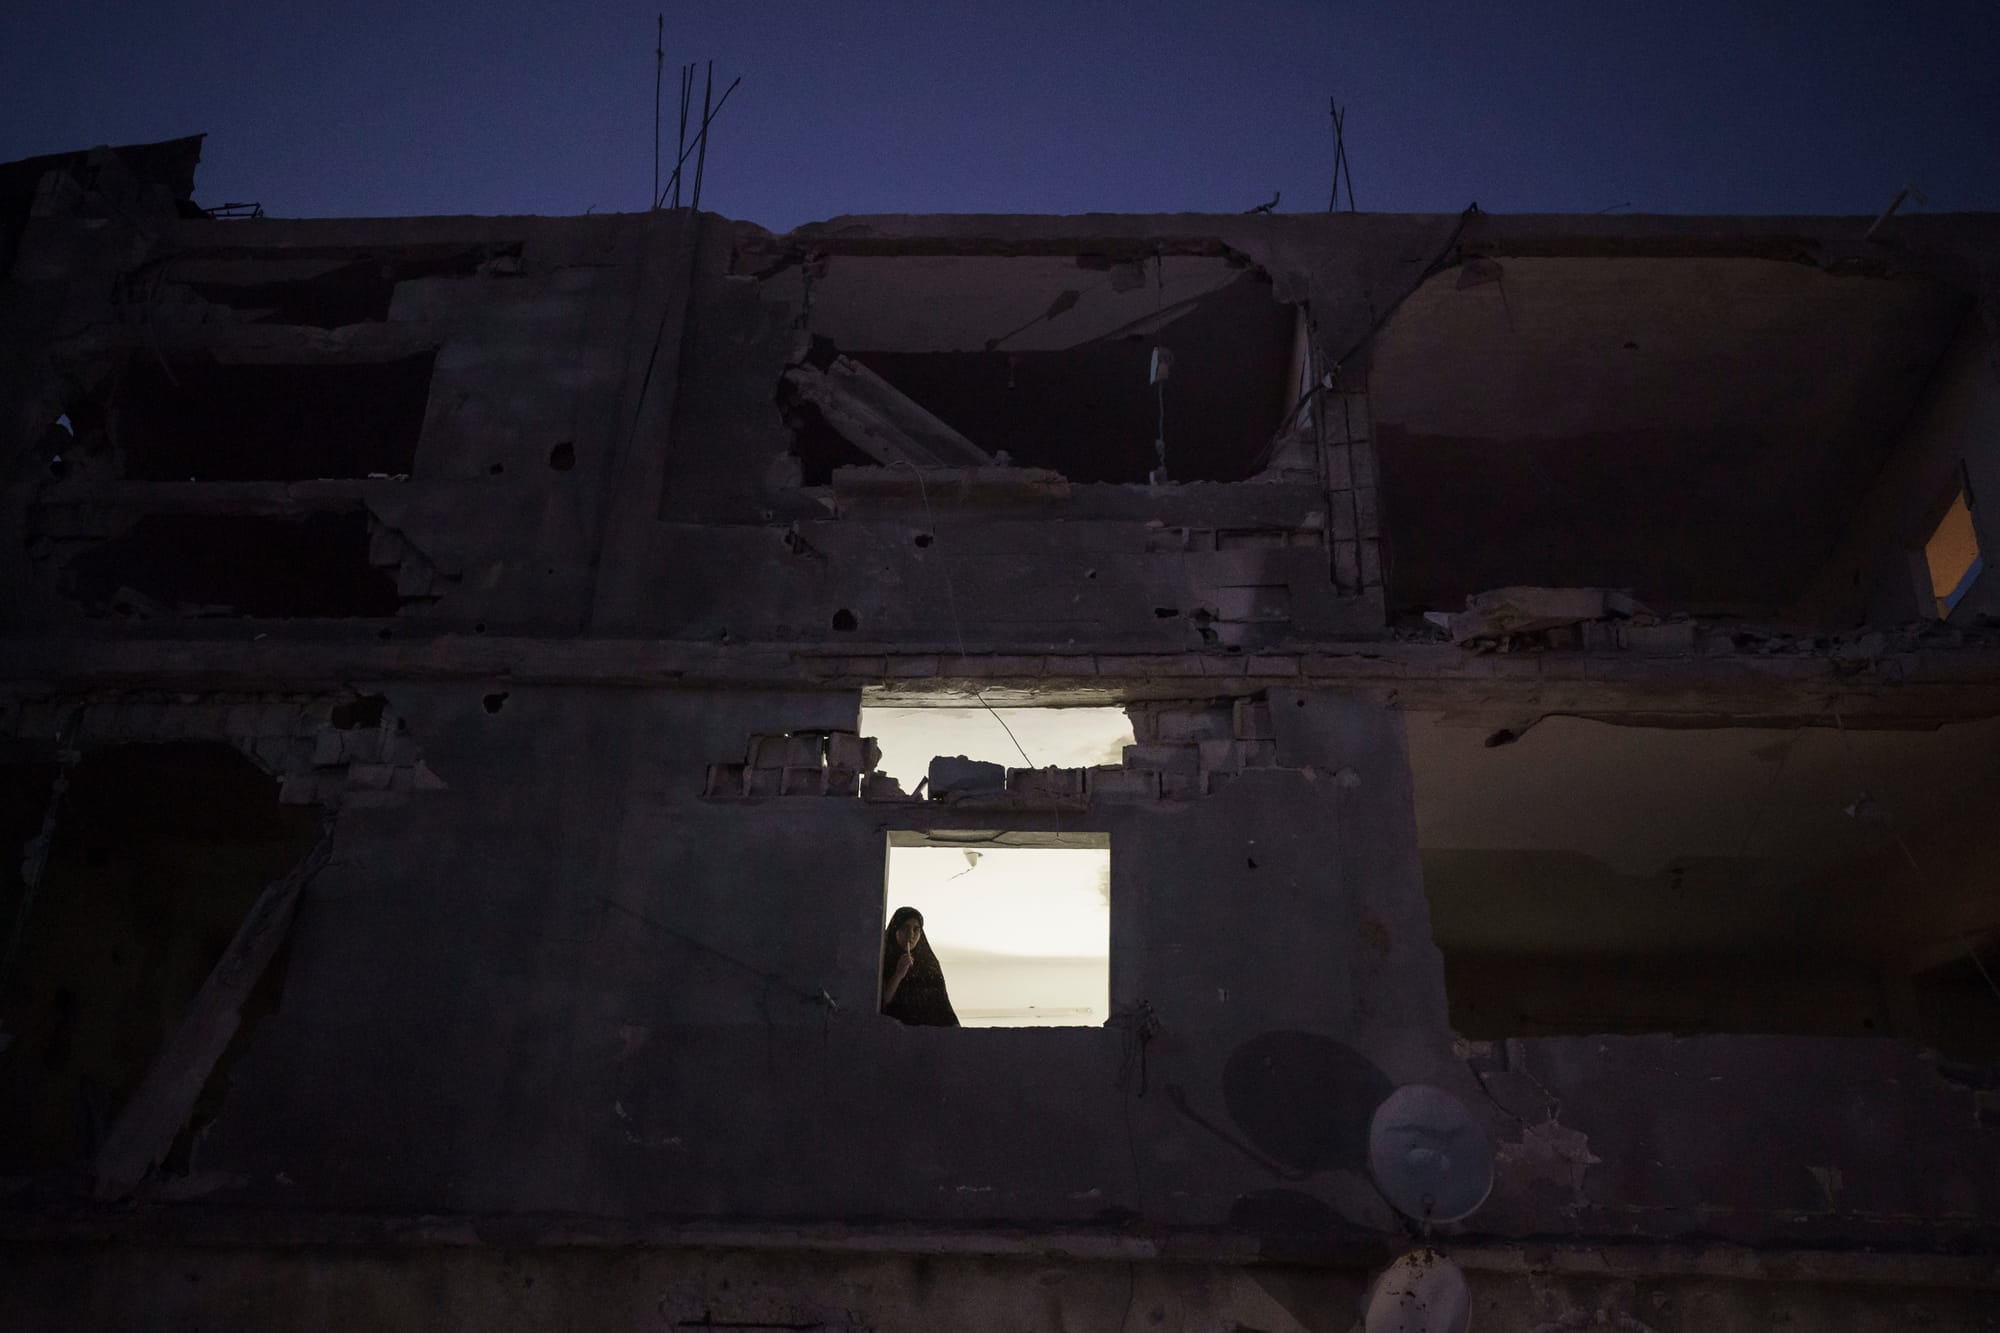 A window in the heavily damaged Nassir home is illuminated at night by a lamp, using electricity from a neighbor. The story of the Nassirs, their neighbors and the toll of four wars is Gaza's story.